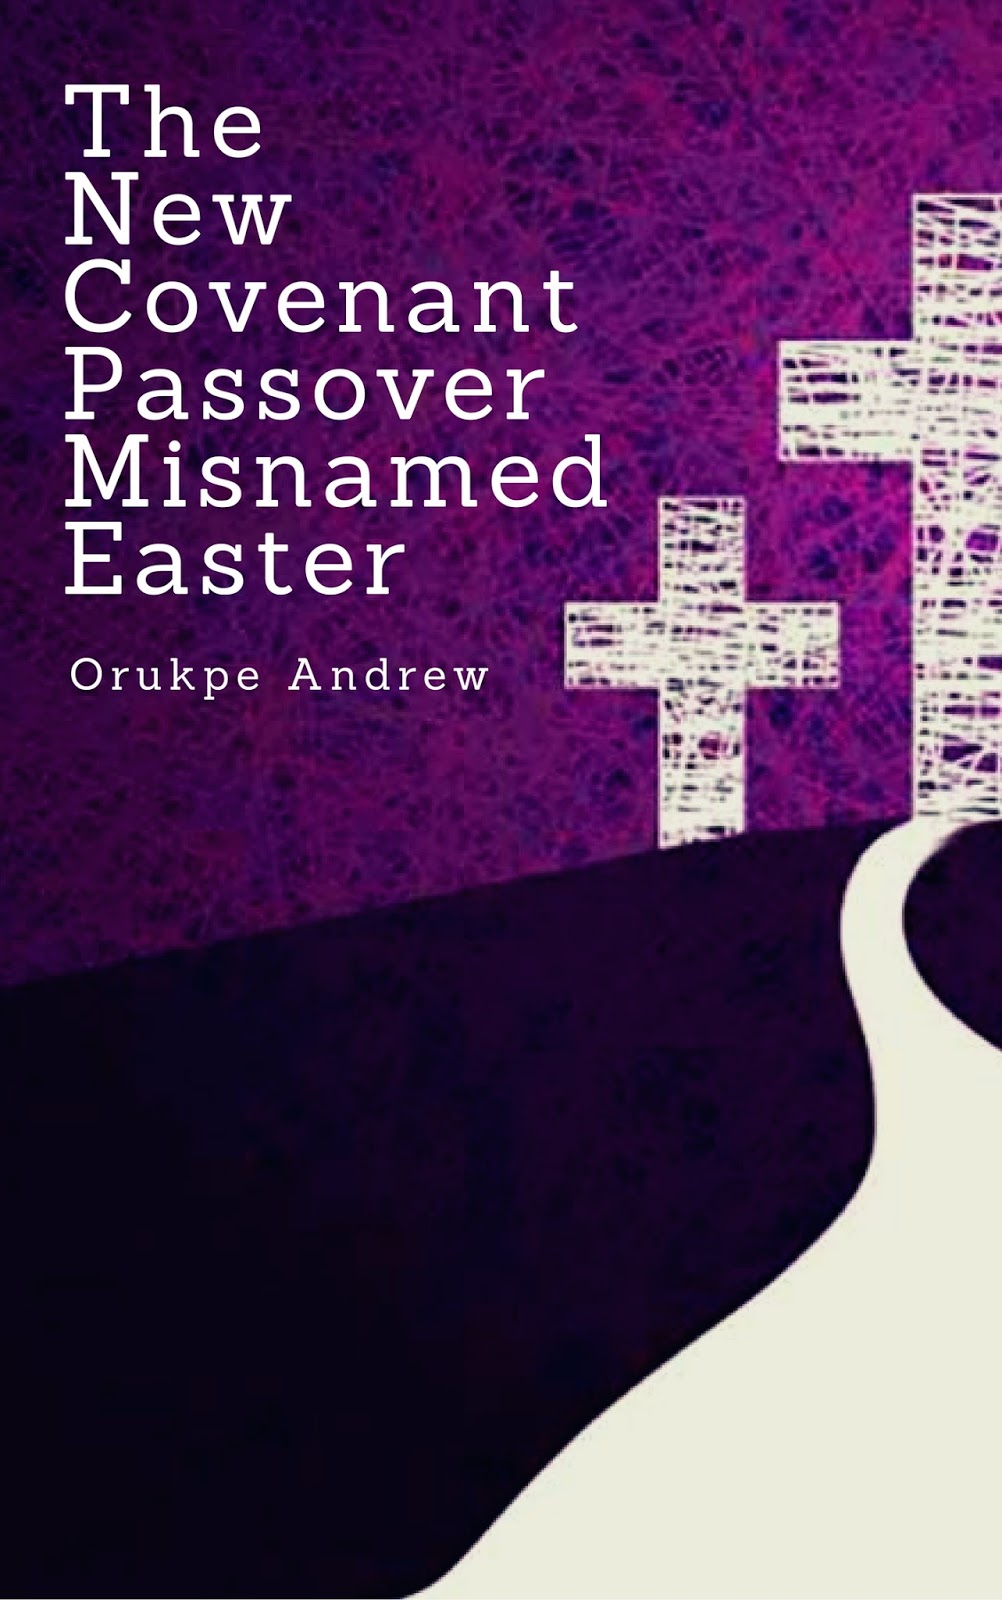 The New Covenant Passover Misnamed Easter: Book for the Lent by Orukpe Andrew